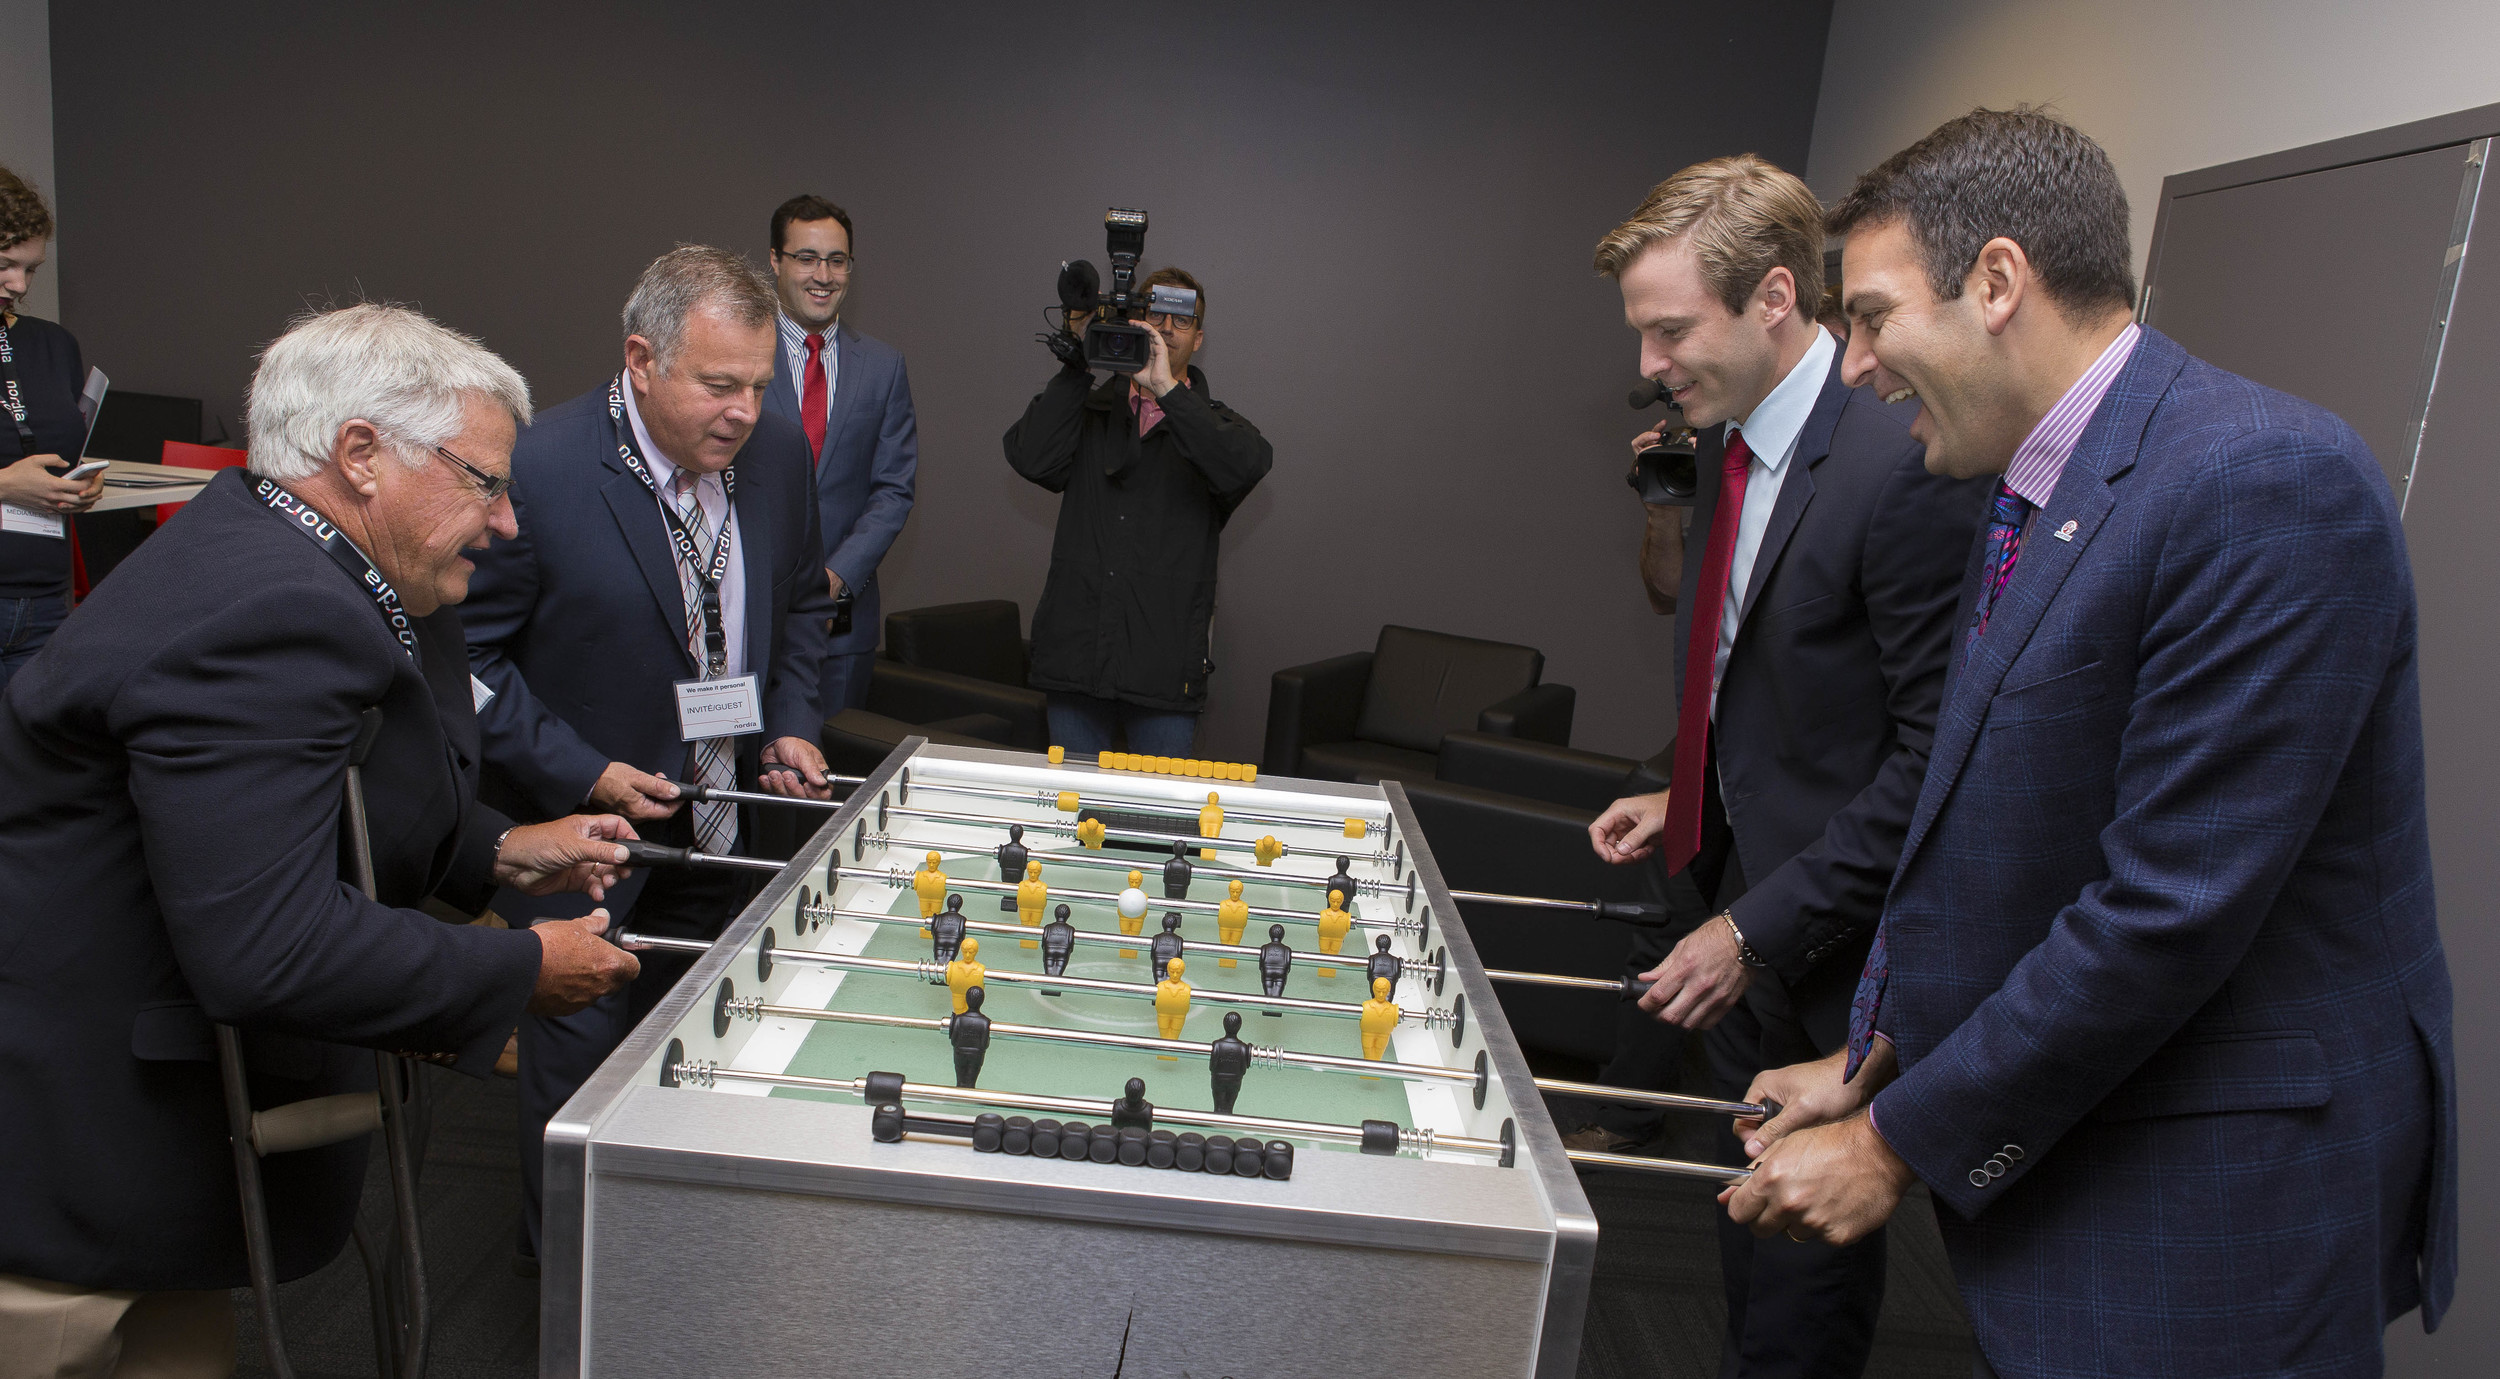 Ministers Doherty and Doucet, Premier Gallant and Mayor Norton playing a friendly game of foosball in Saint John centre